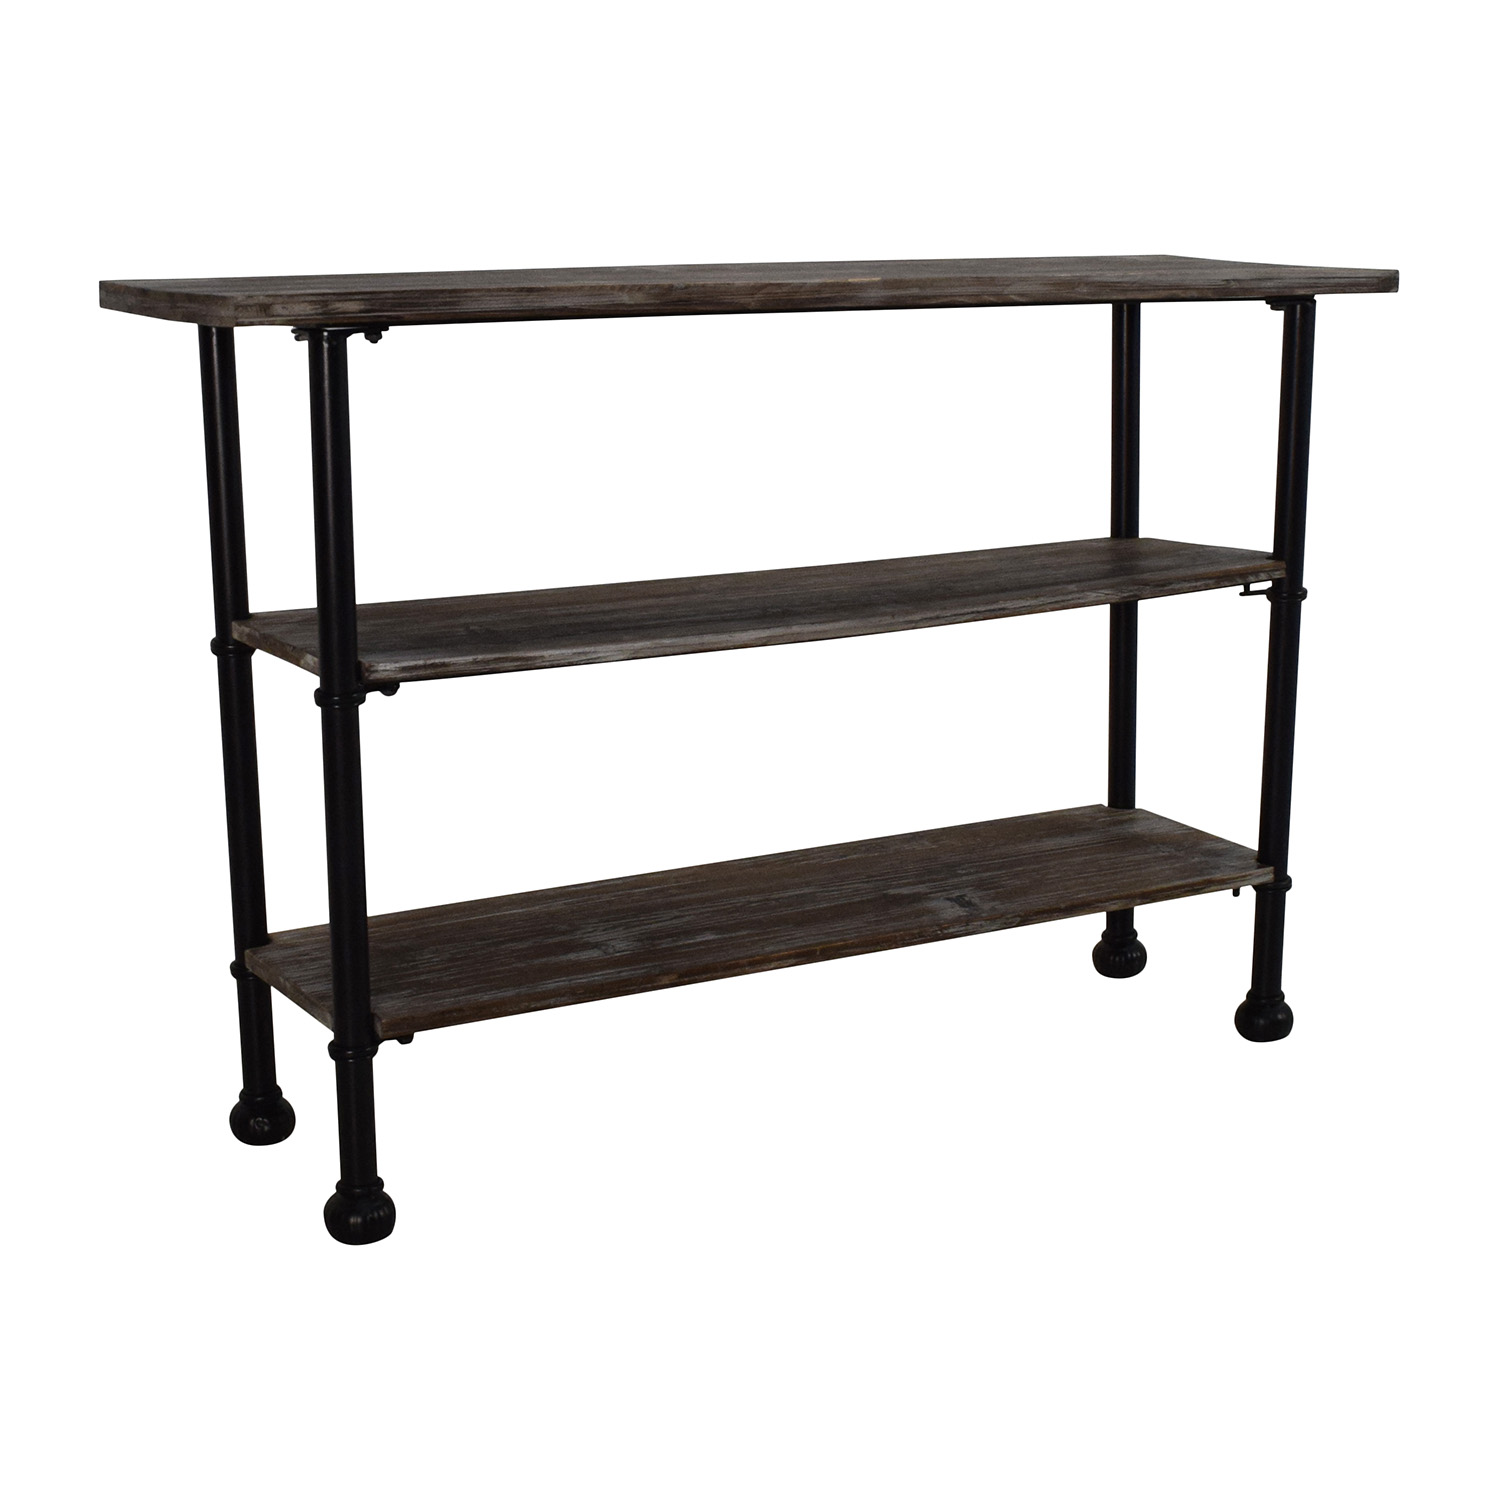 52 off unknown rustic brown wood 3 tier shelf table for Table 52 prices